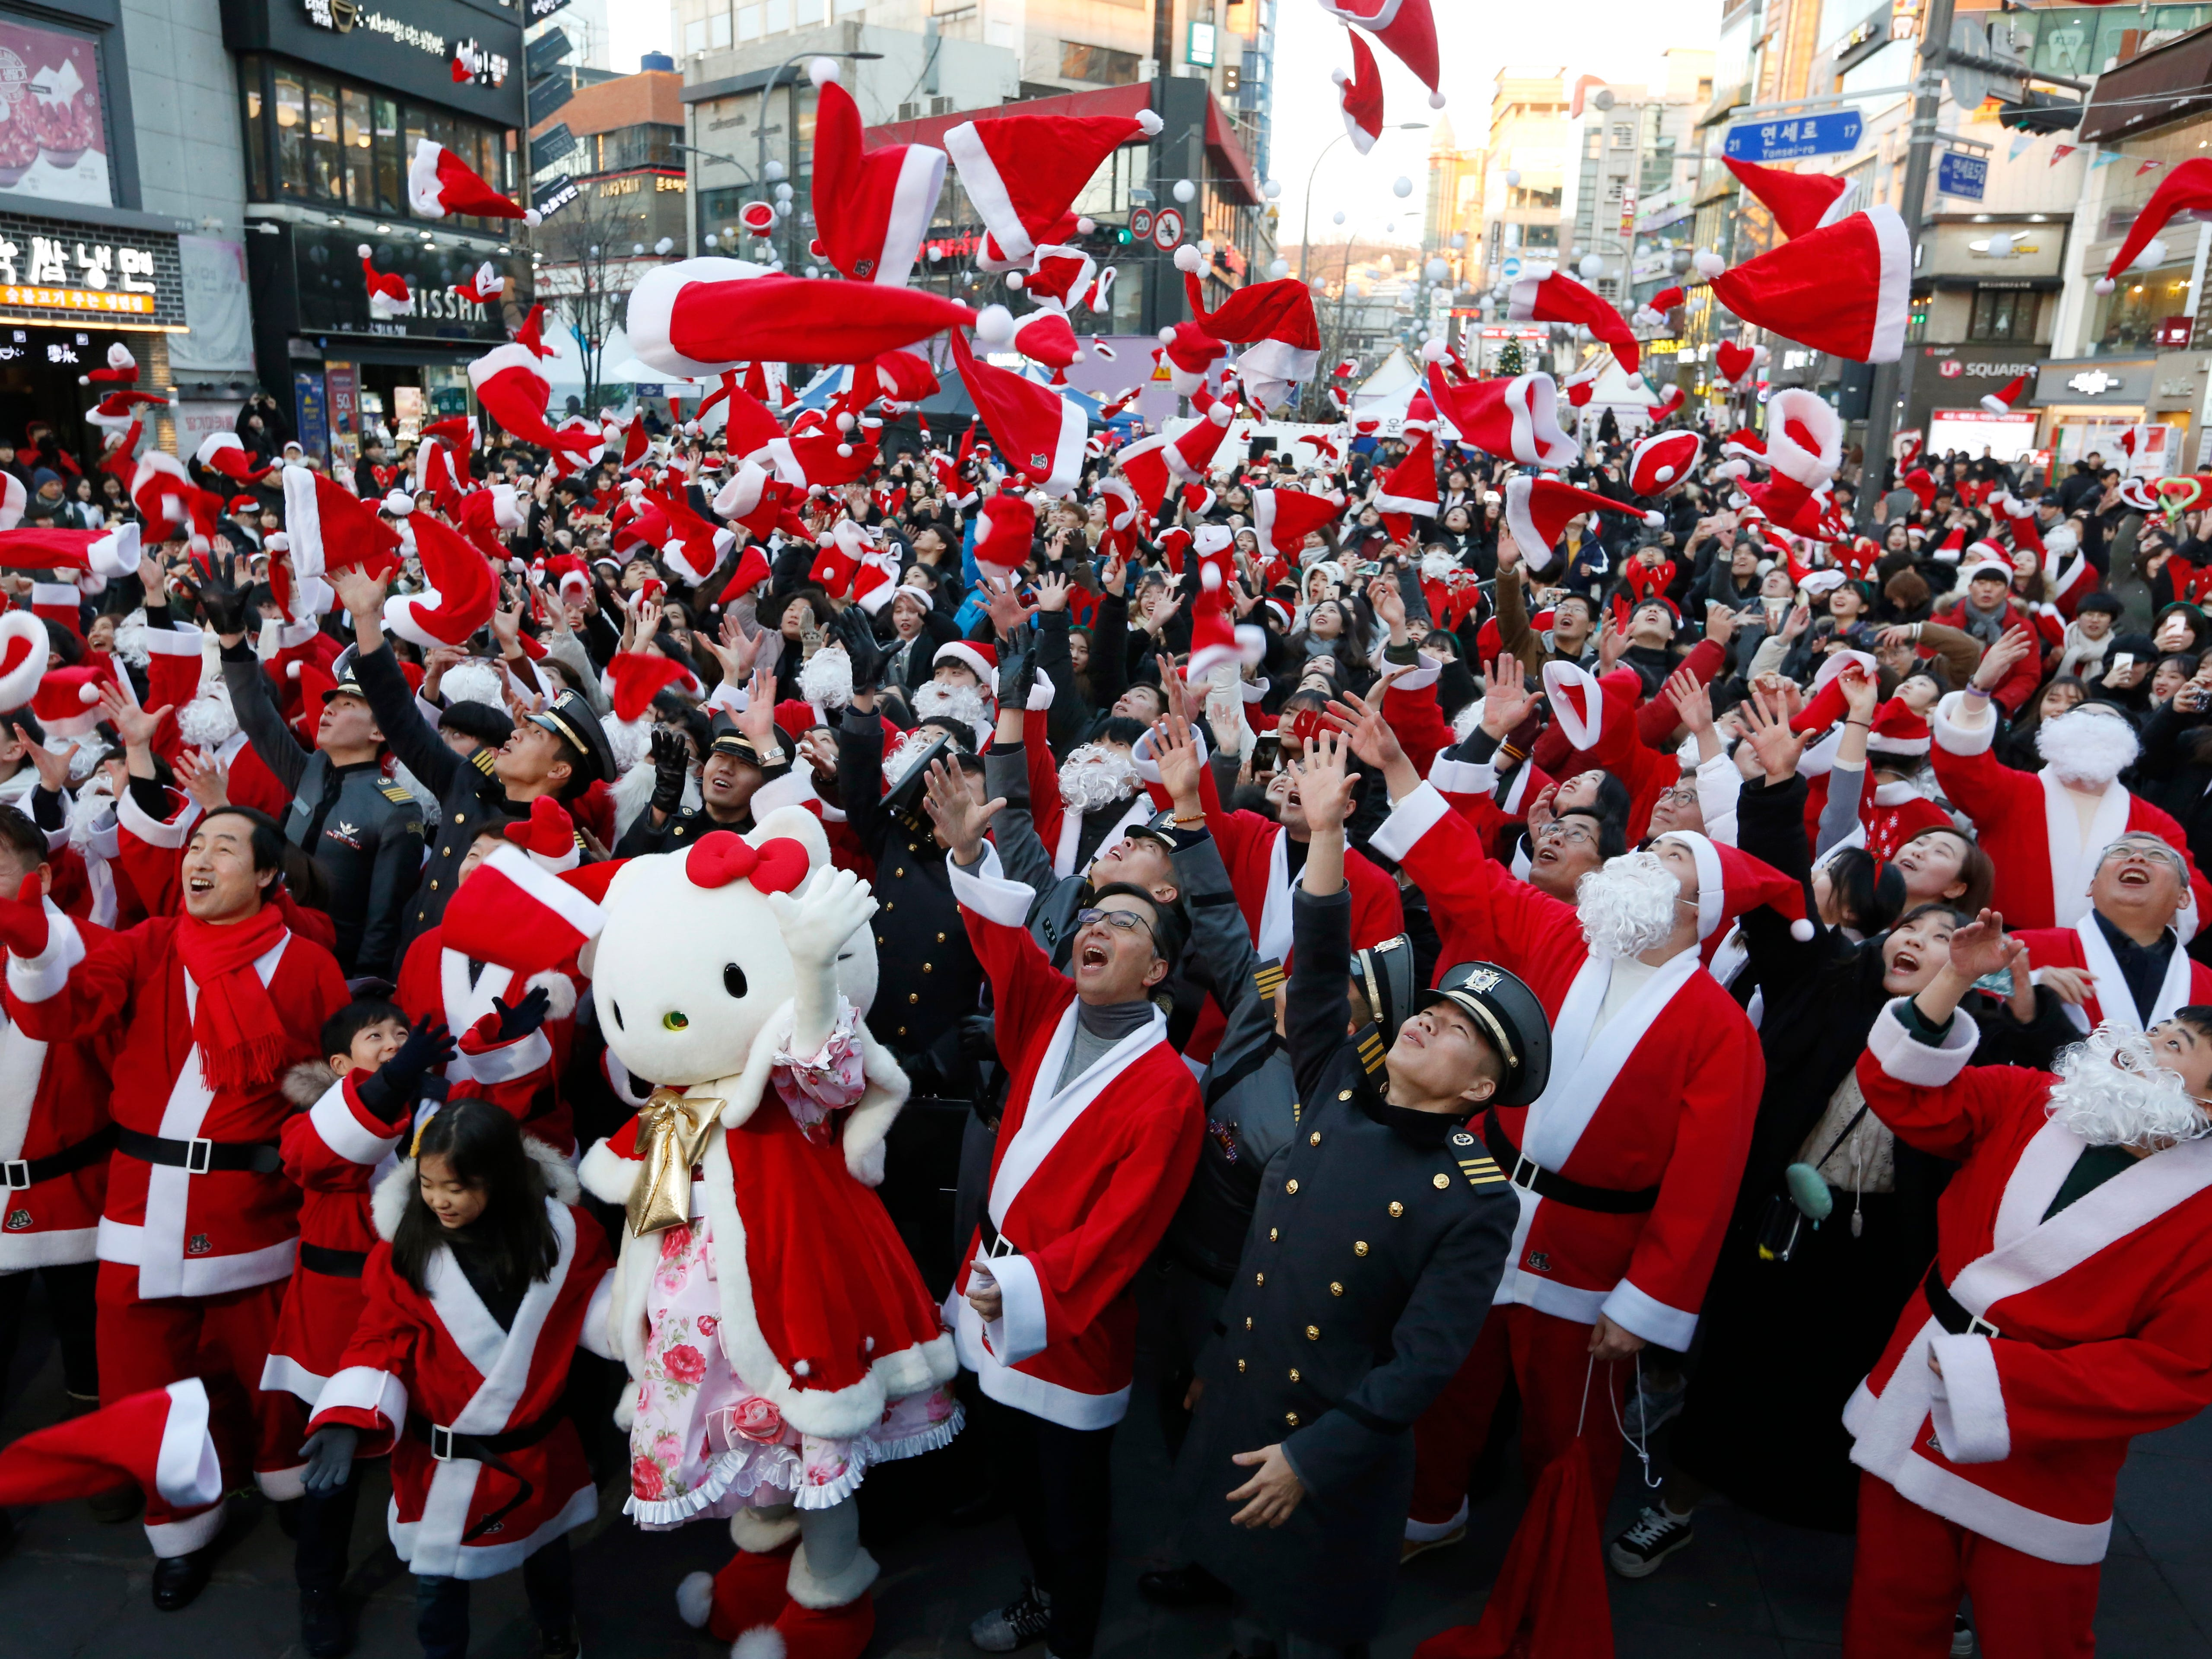 epaselect epa07247344 South Korean volunteers wearing Santa Claus costumes fling their hats into the air during a Christmas Eve charity event in Seoul, South Korea, 24 December 2018. The Seodaemun-gu local government office celebrated Christmas with a charity event, giving away gifts to 1,004 impoverished children.  EPA-EFE/JEON HEON-KYUN ORG XMIT: JHK01